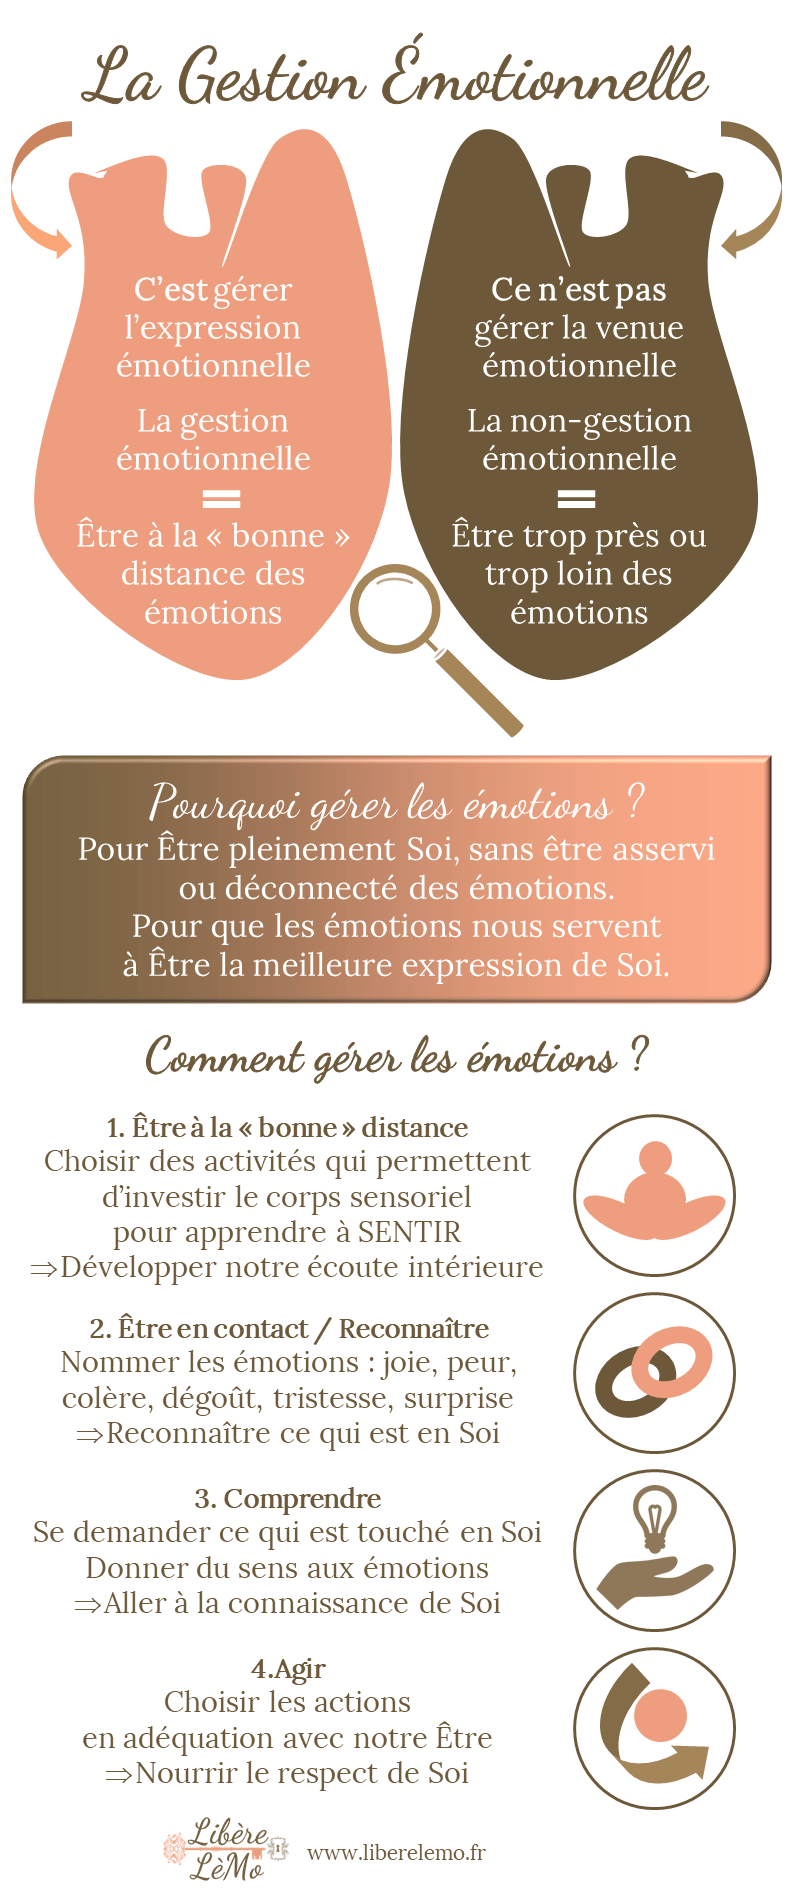 Gestion Emotionnelle Libère LèMo